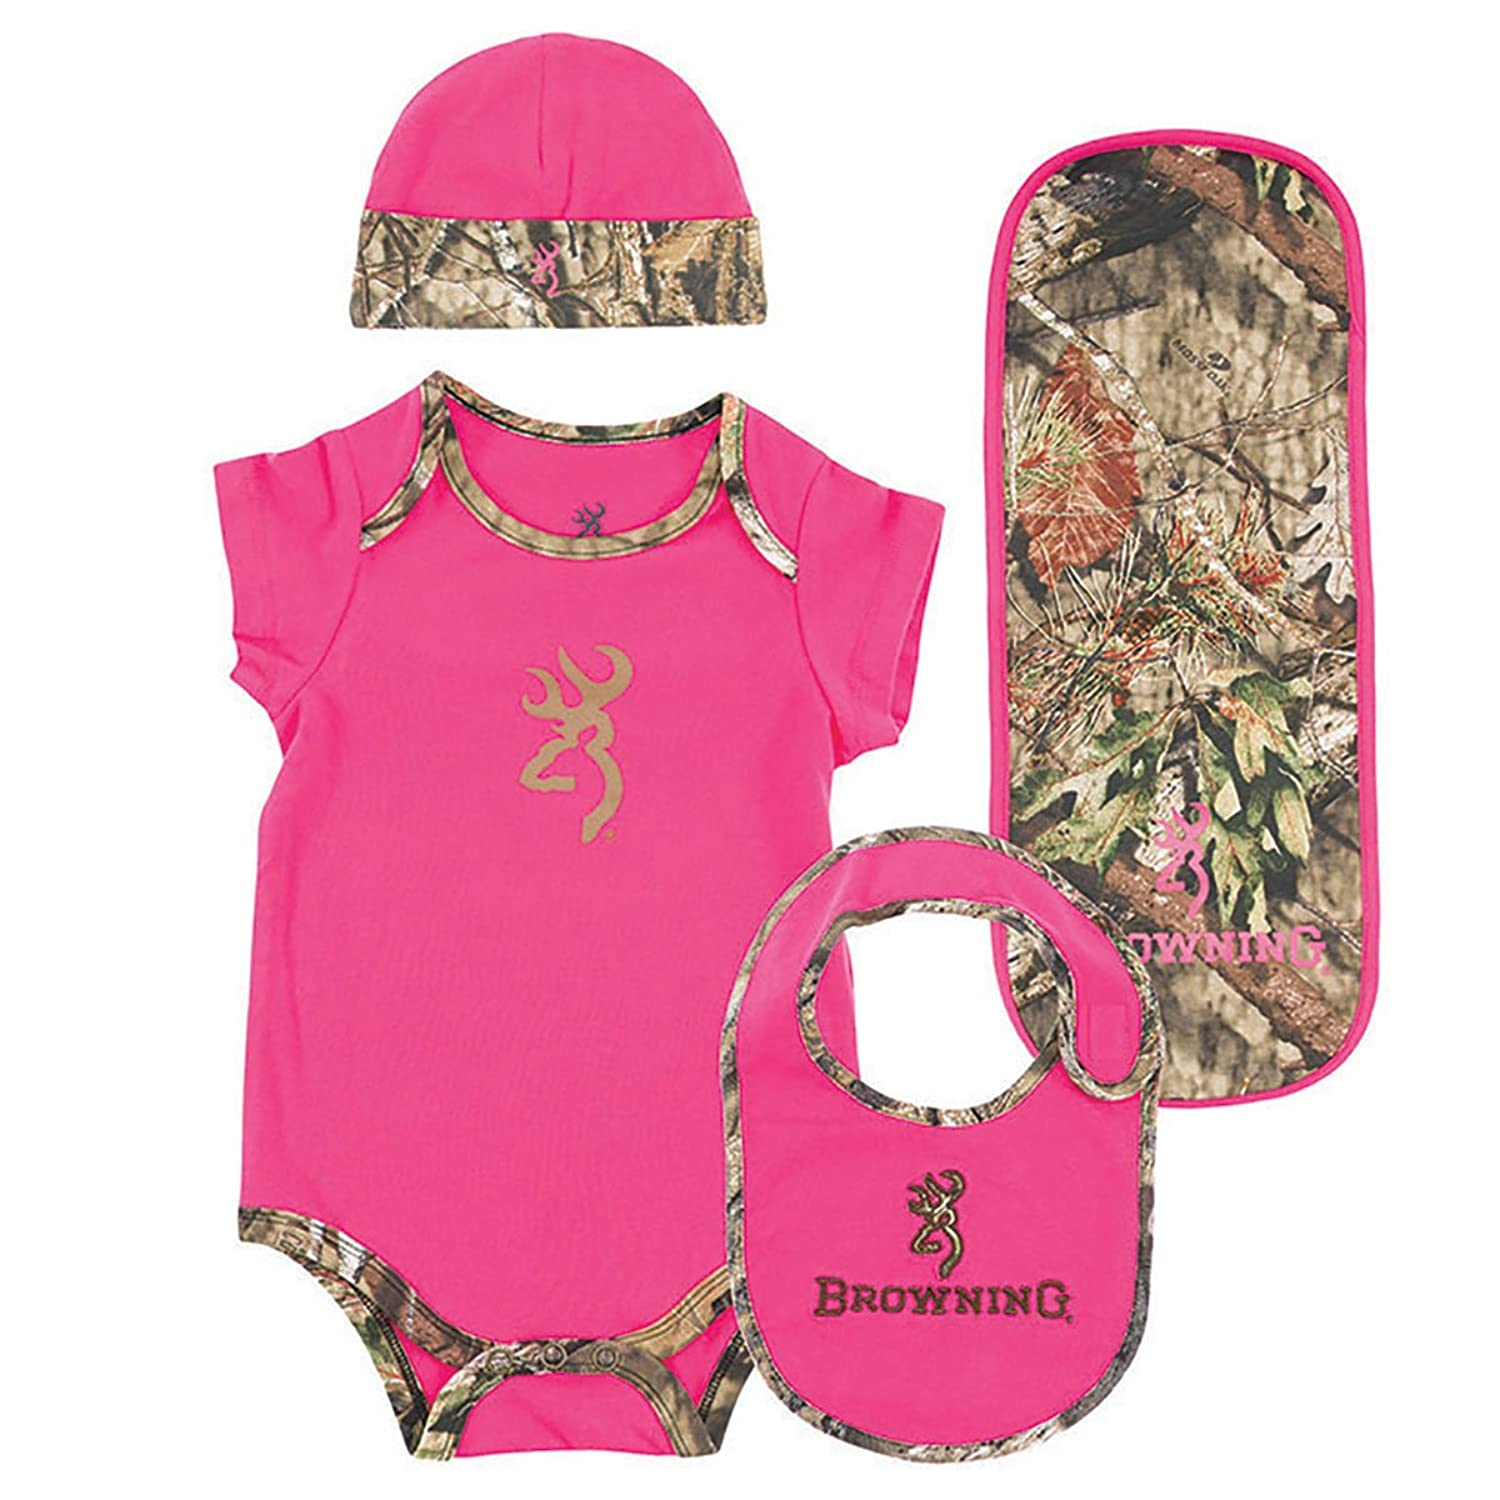 Baby Camo Outfit Clothes Browning Girls Months Set